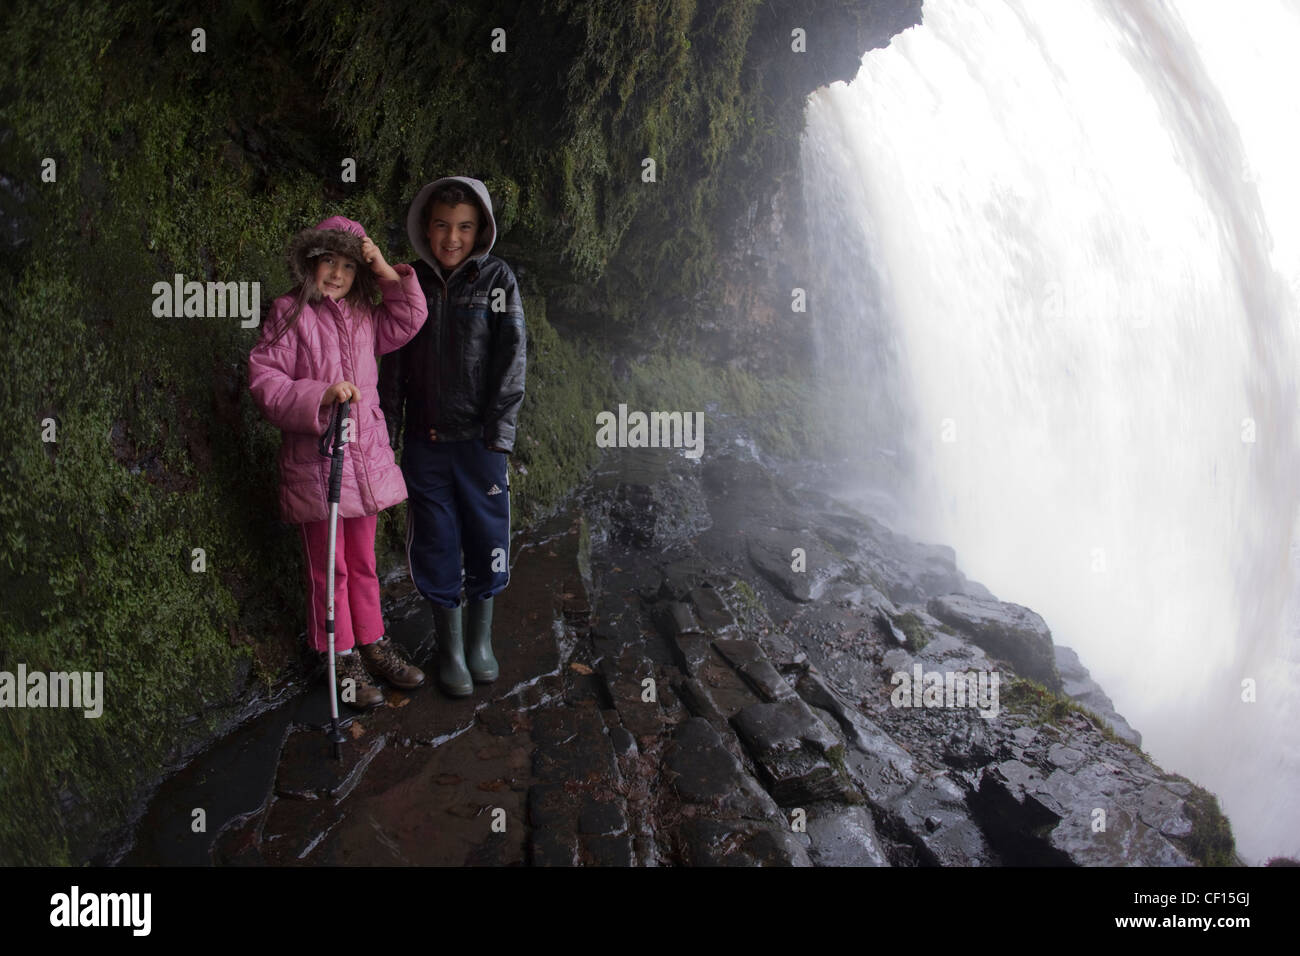 Walking behind the curtain of Scwd yr Eira (or Sgwd yr Eira) waterfall on Afon Hepste in the Brecon Beacons National - Stock Image